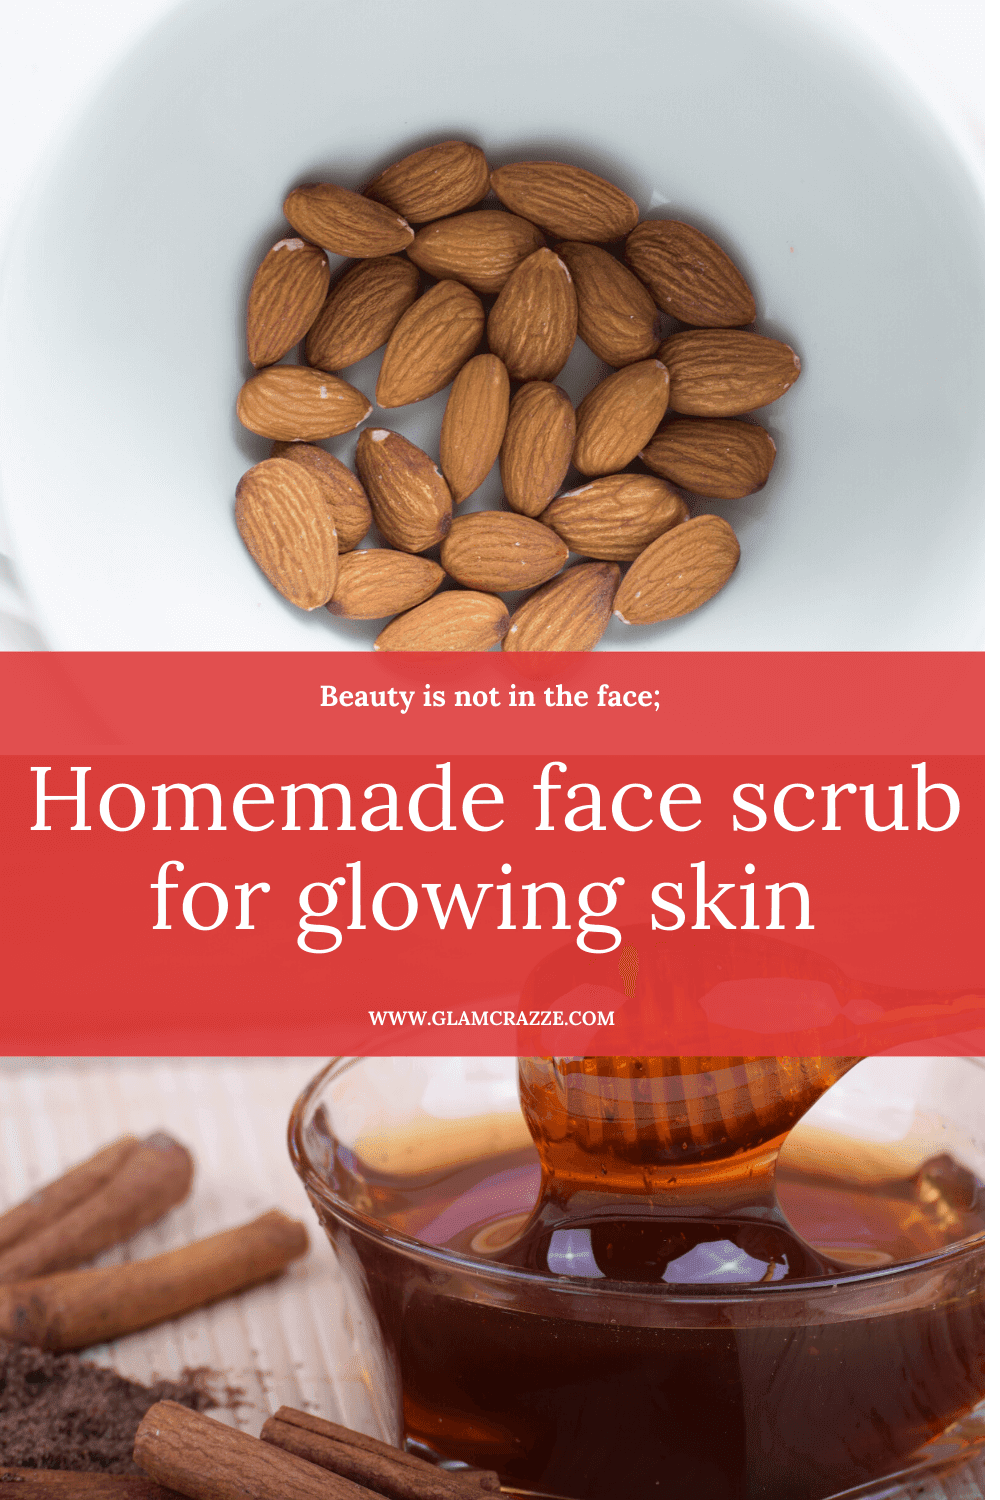 Homemade almond face scrub for glowing skin